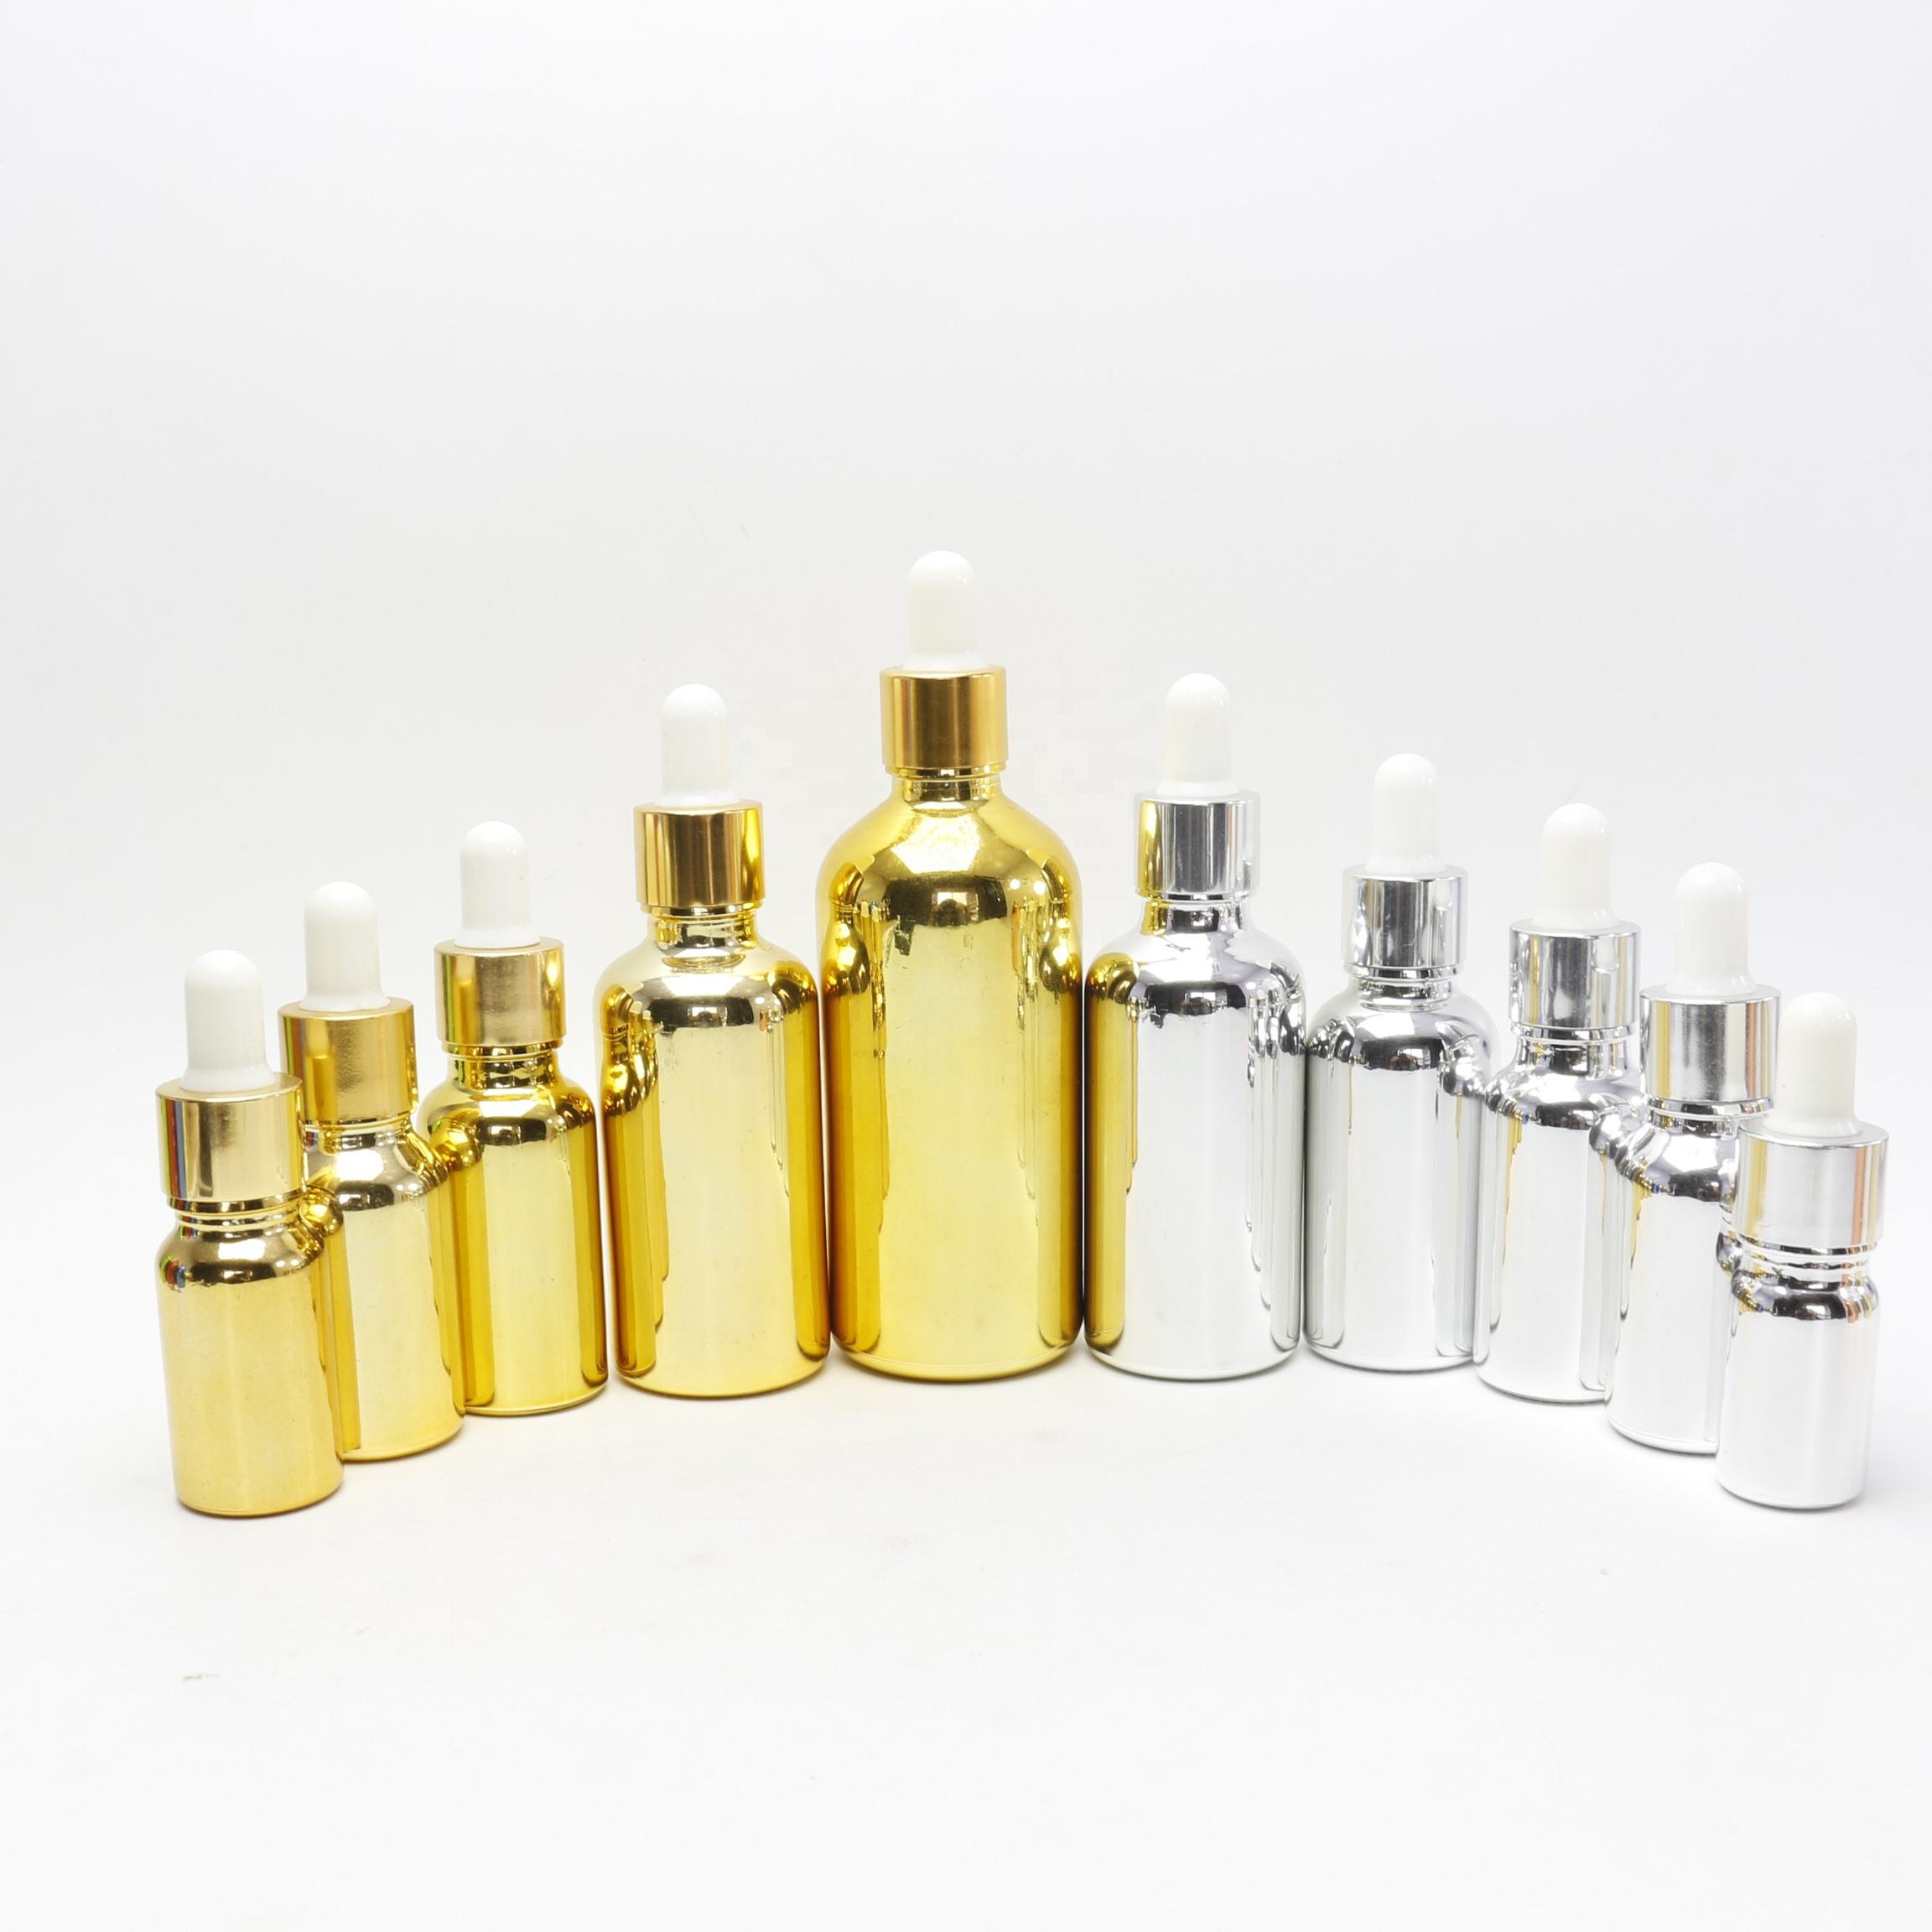 5ml 10ml 15ml 20ml 30ml 50ml 100ml shiny electroplate silver glass rose gold dropper bottles for Essential oil GB150E